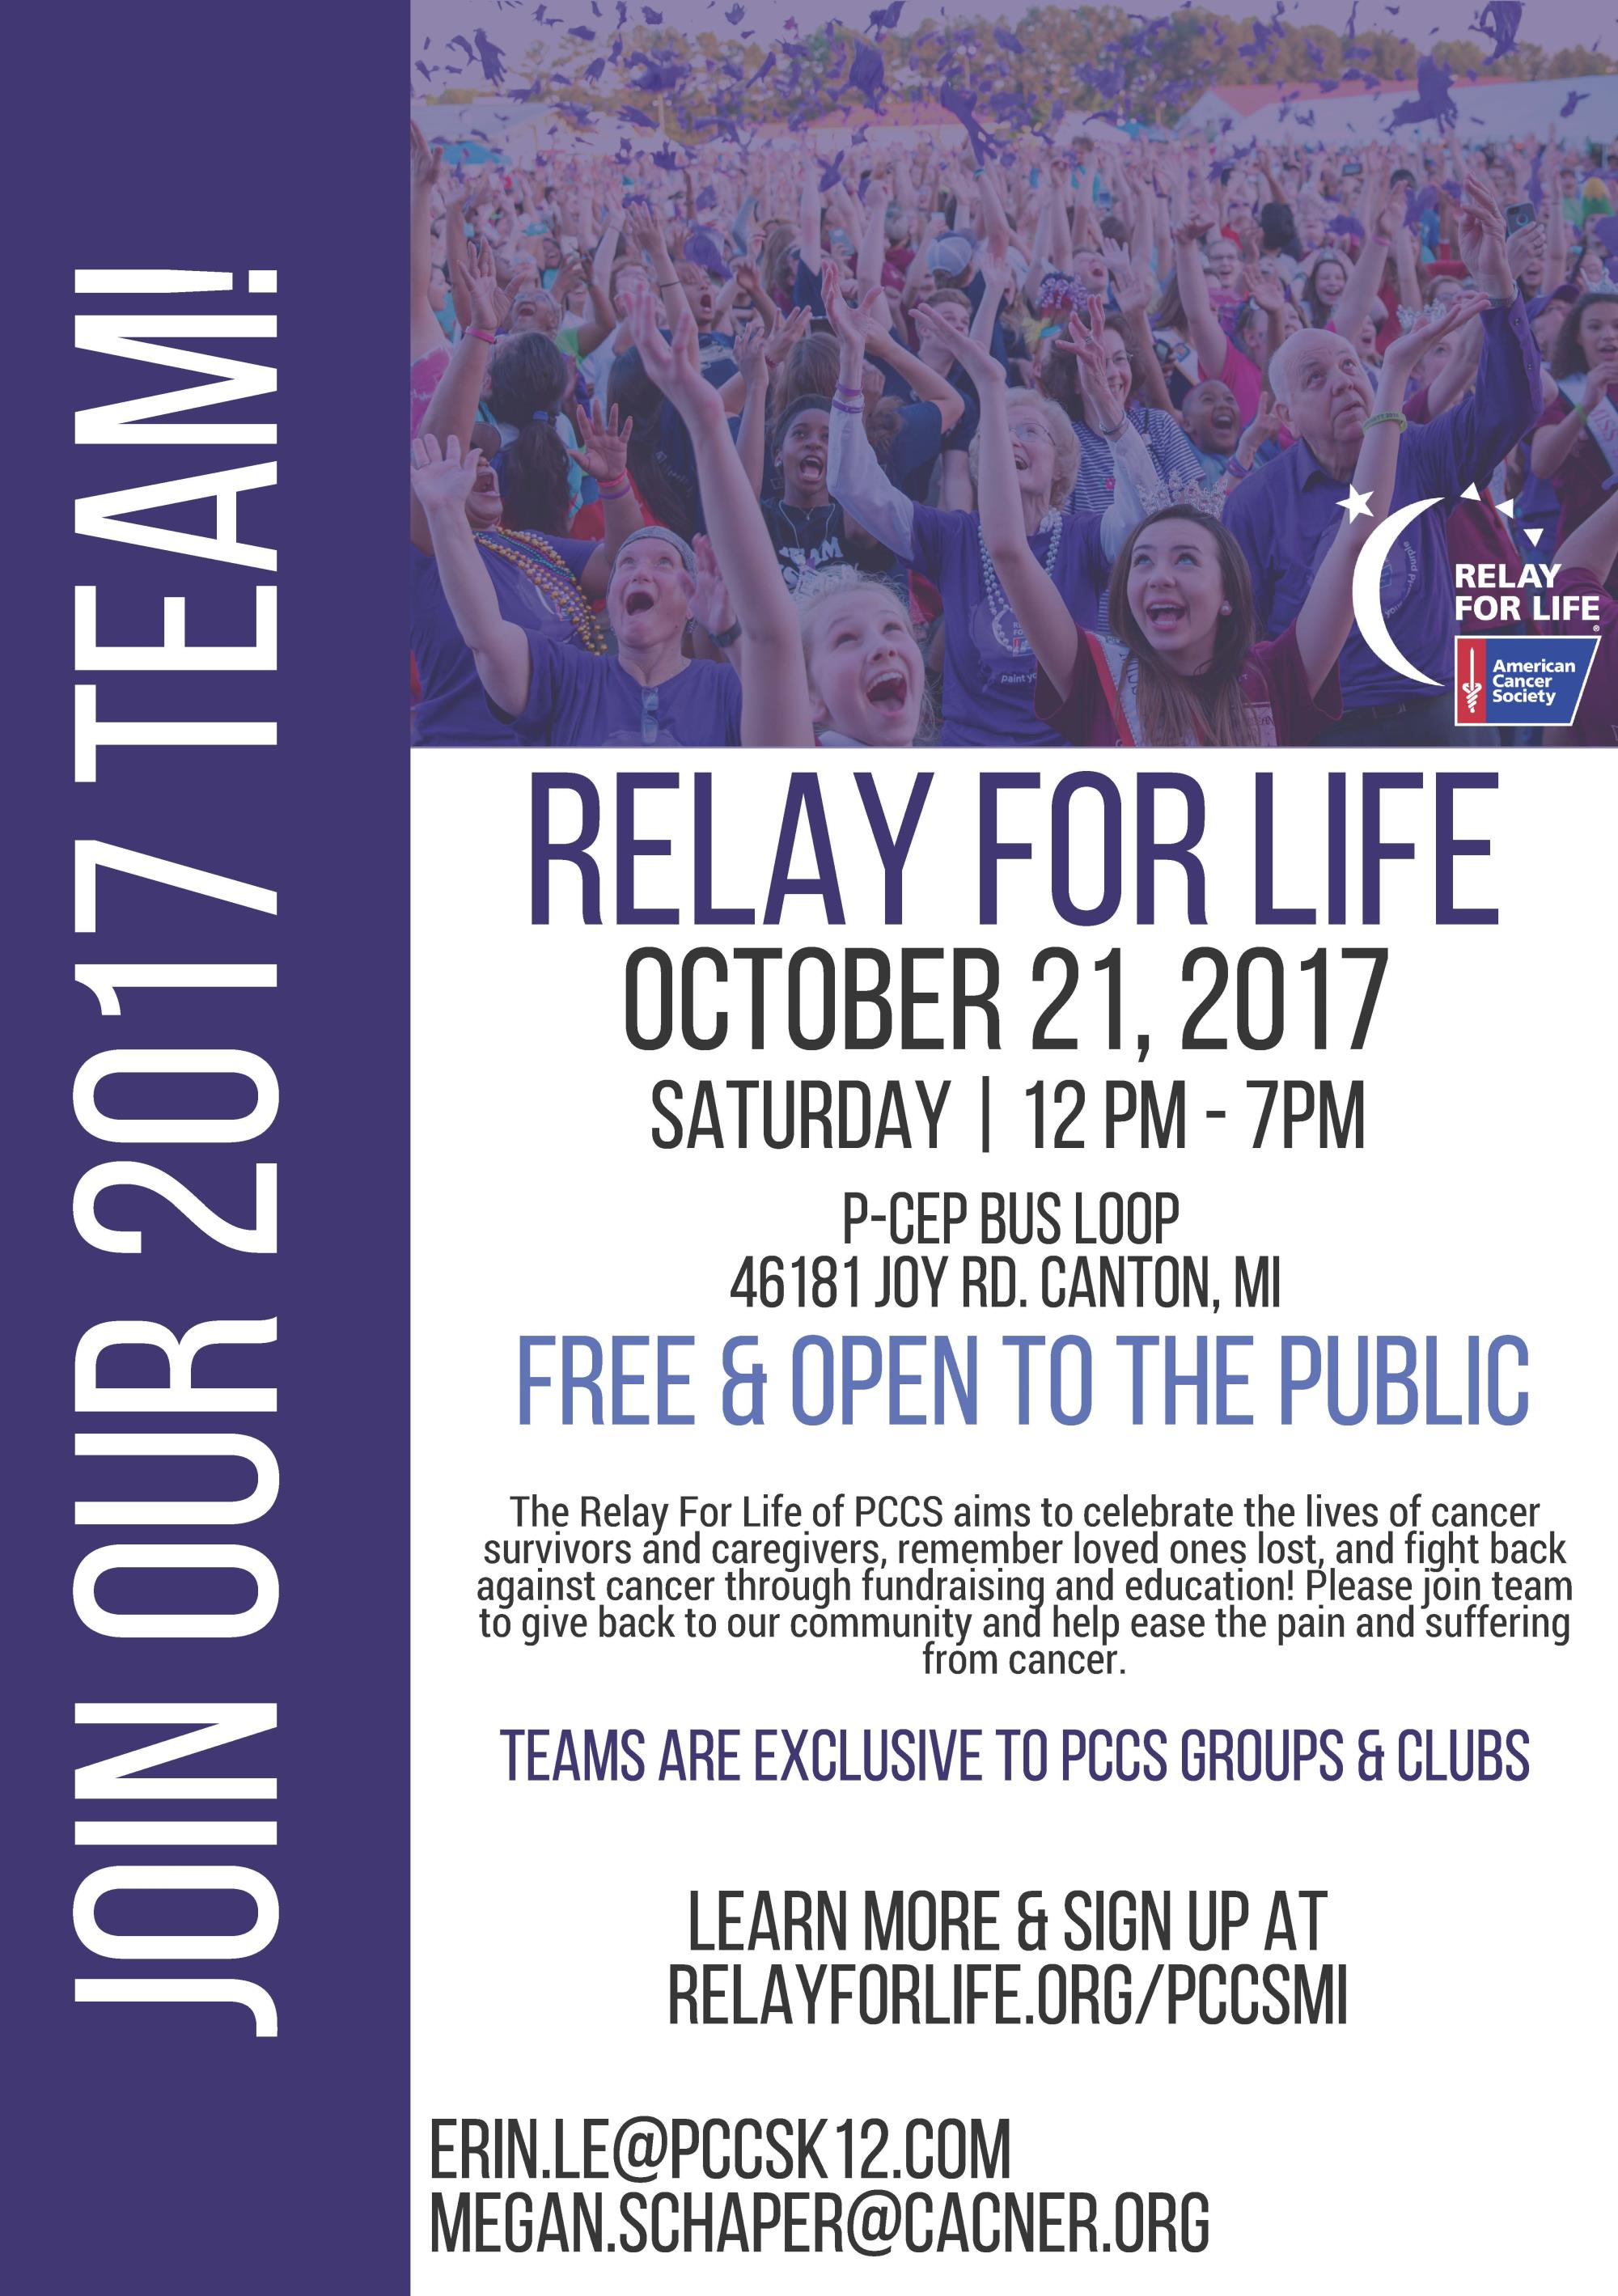 Relay For Life October 21 from 12-7 p.m. at P-CEP Bus Loop